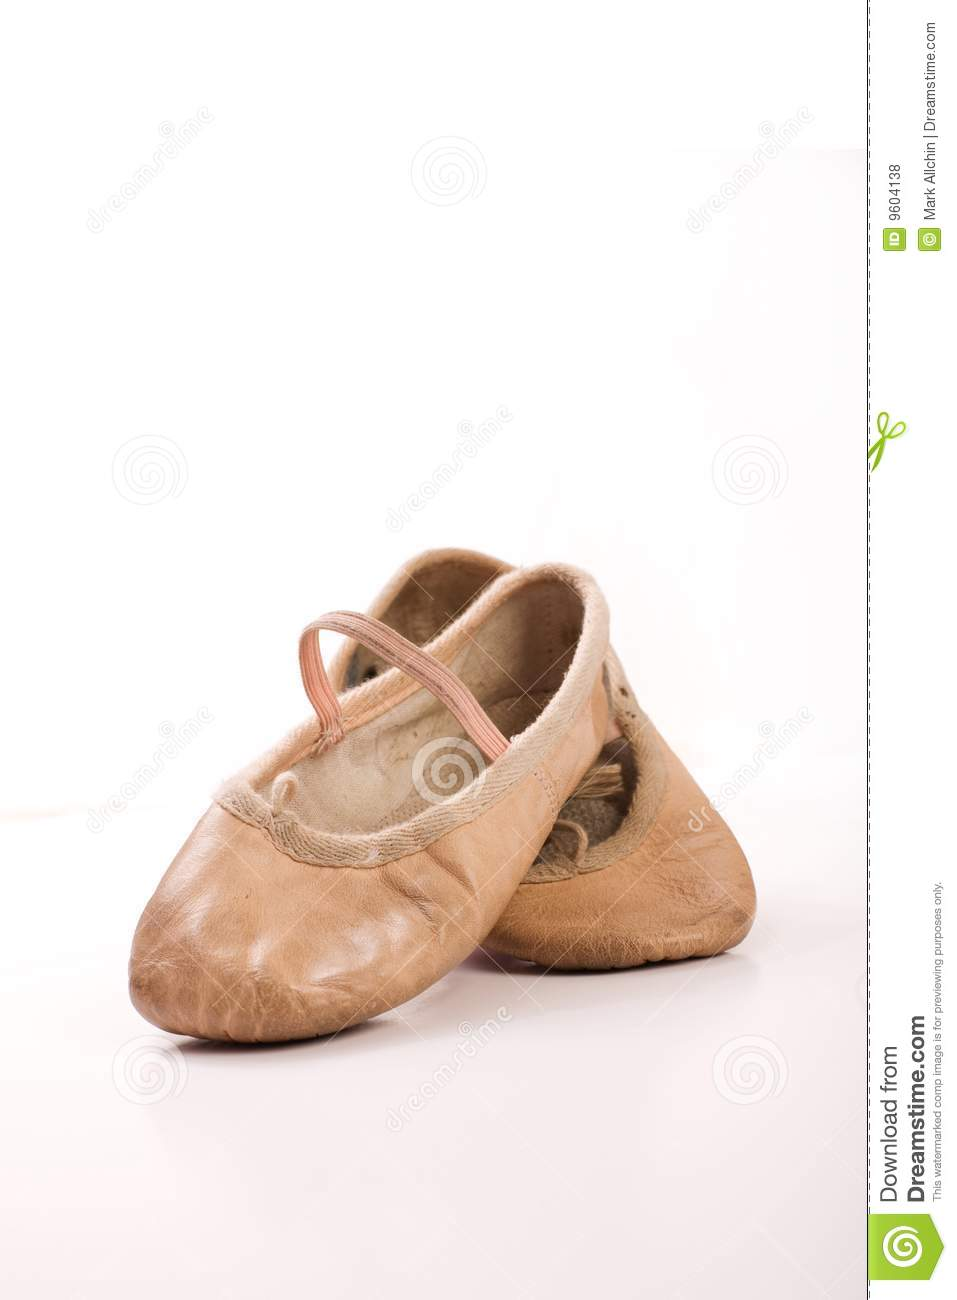 Childrens White Ballet Shoes